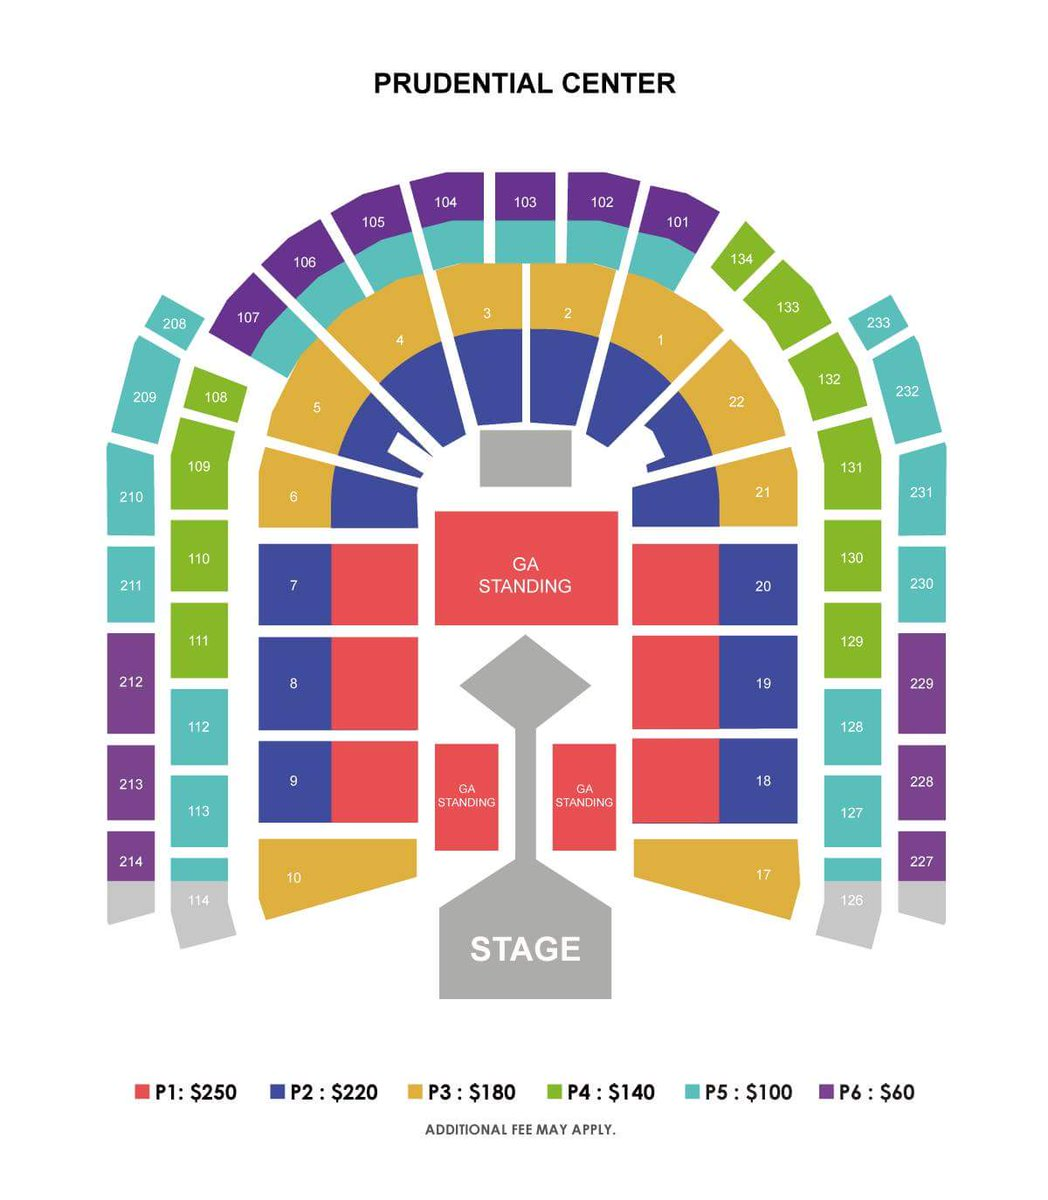 I M Seeing Two Diffe Seating Maps Which One Is The Correct Pic Twitter Flrtfvhiuy